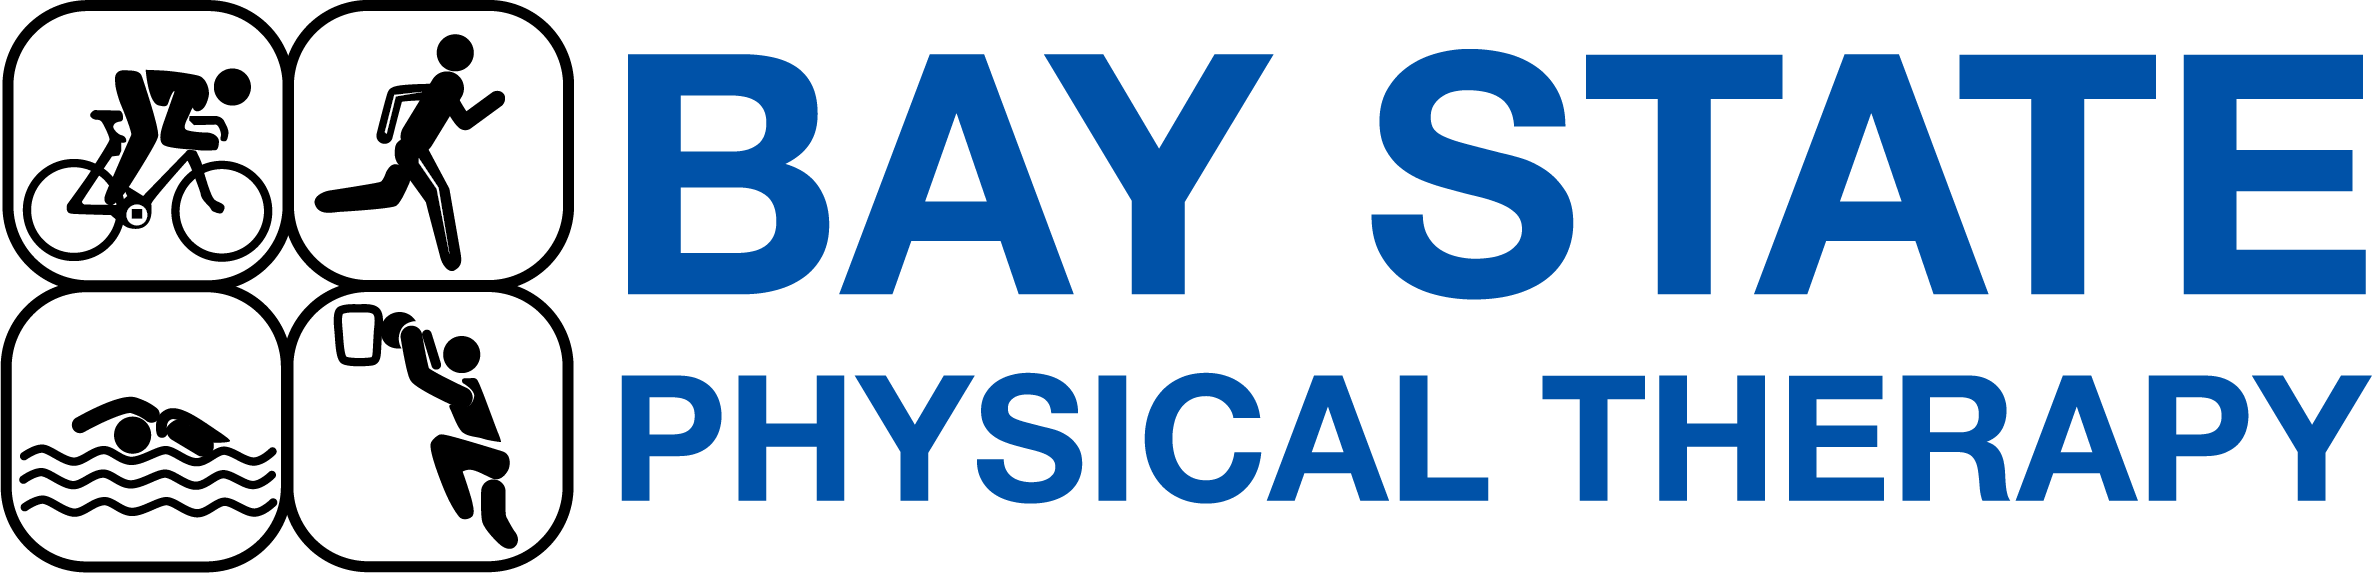 Bay State Physical Therapy